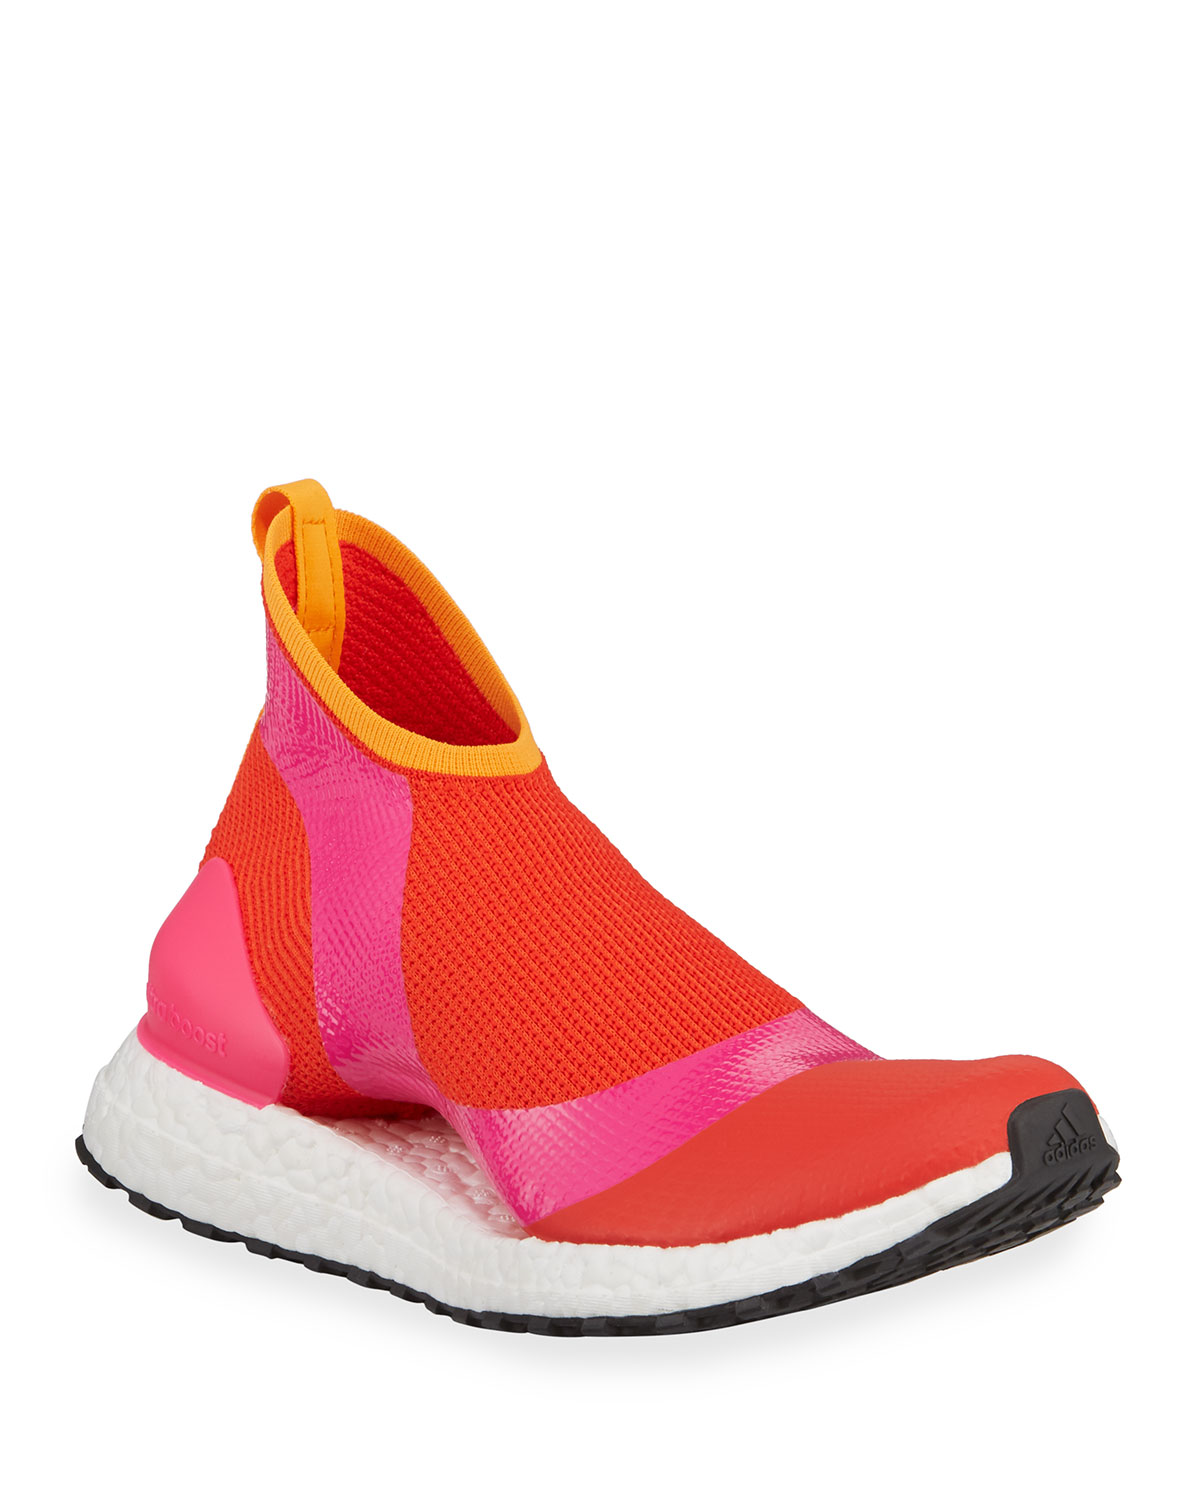 2f263d0a6 top quality stella mccartney adidas pure boost x spring 2017 96151 efca2   germany ultra boost x fabric sneakers pink orange 89f5b 97ff9